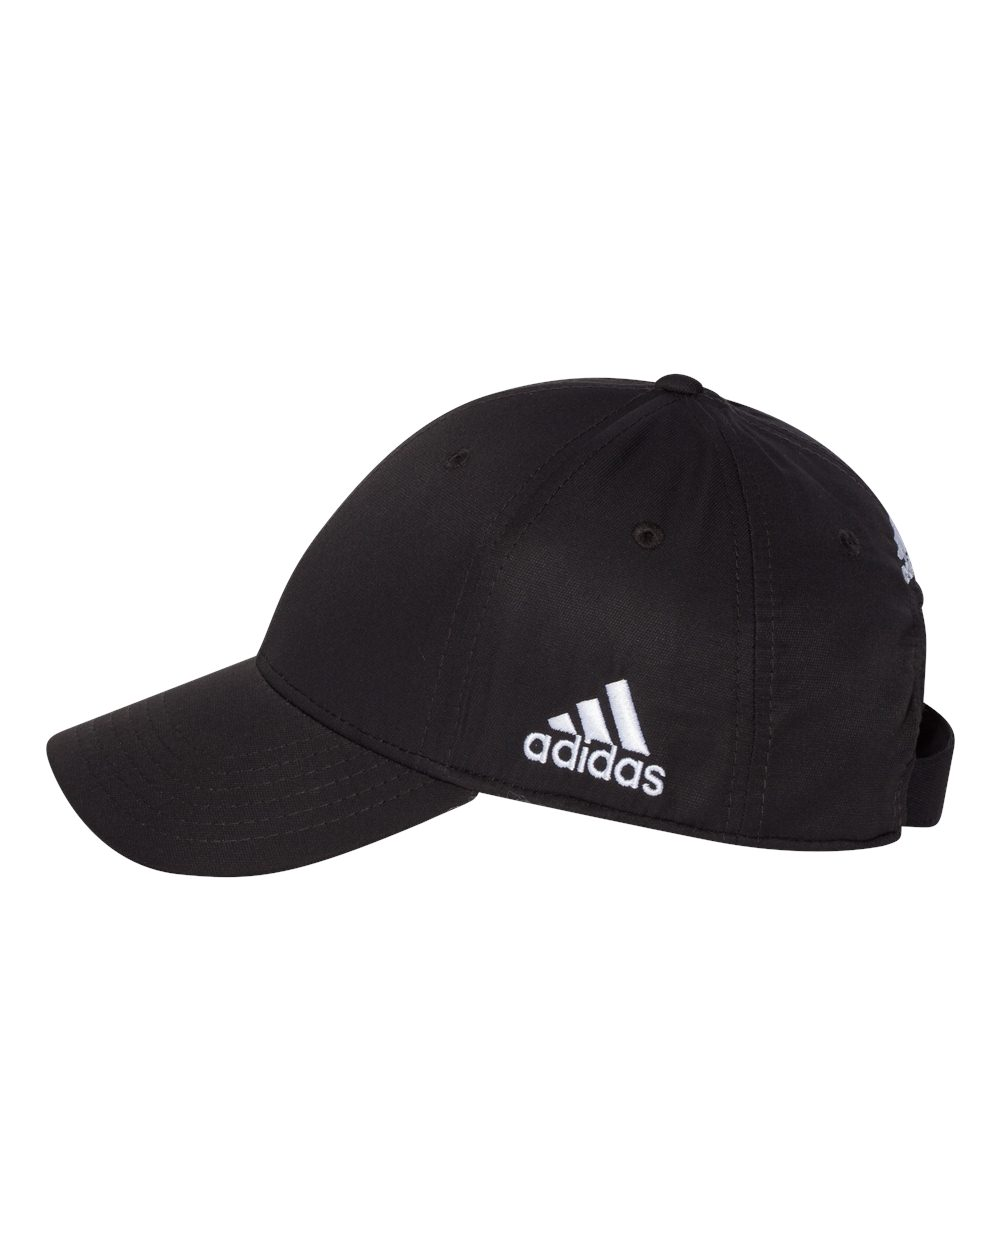 adidas - Core Performance Max Structured Cap  9.95 - Accessories 0eecf4ea9438